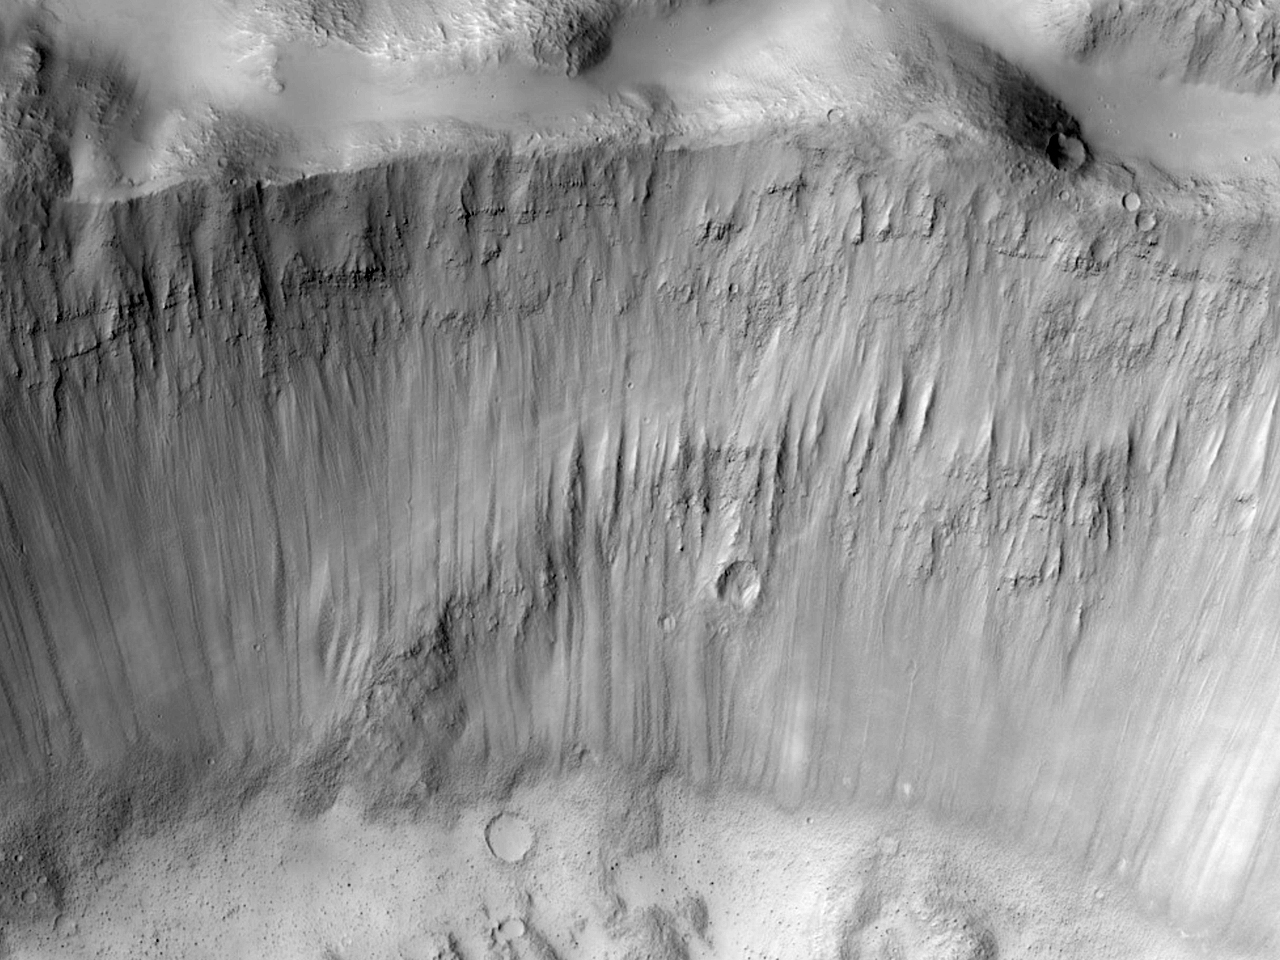 Layers in a Crater Near Phlegra Montes